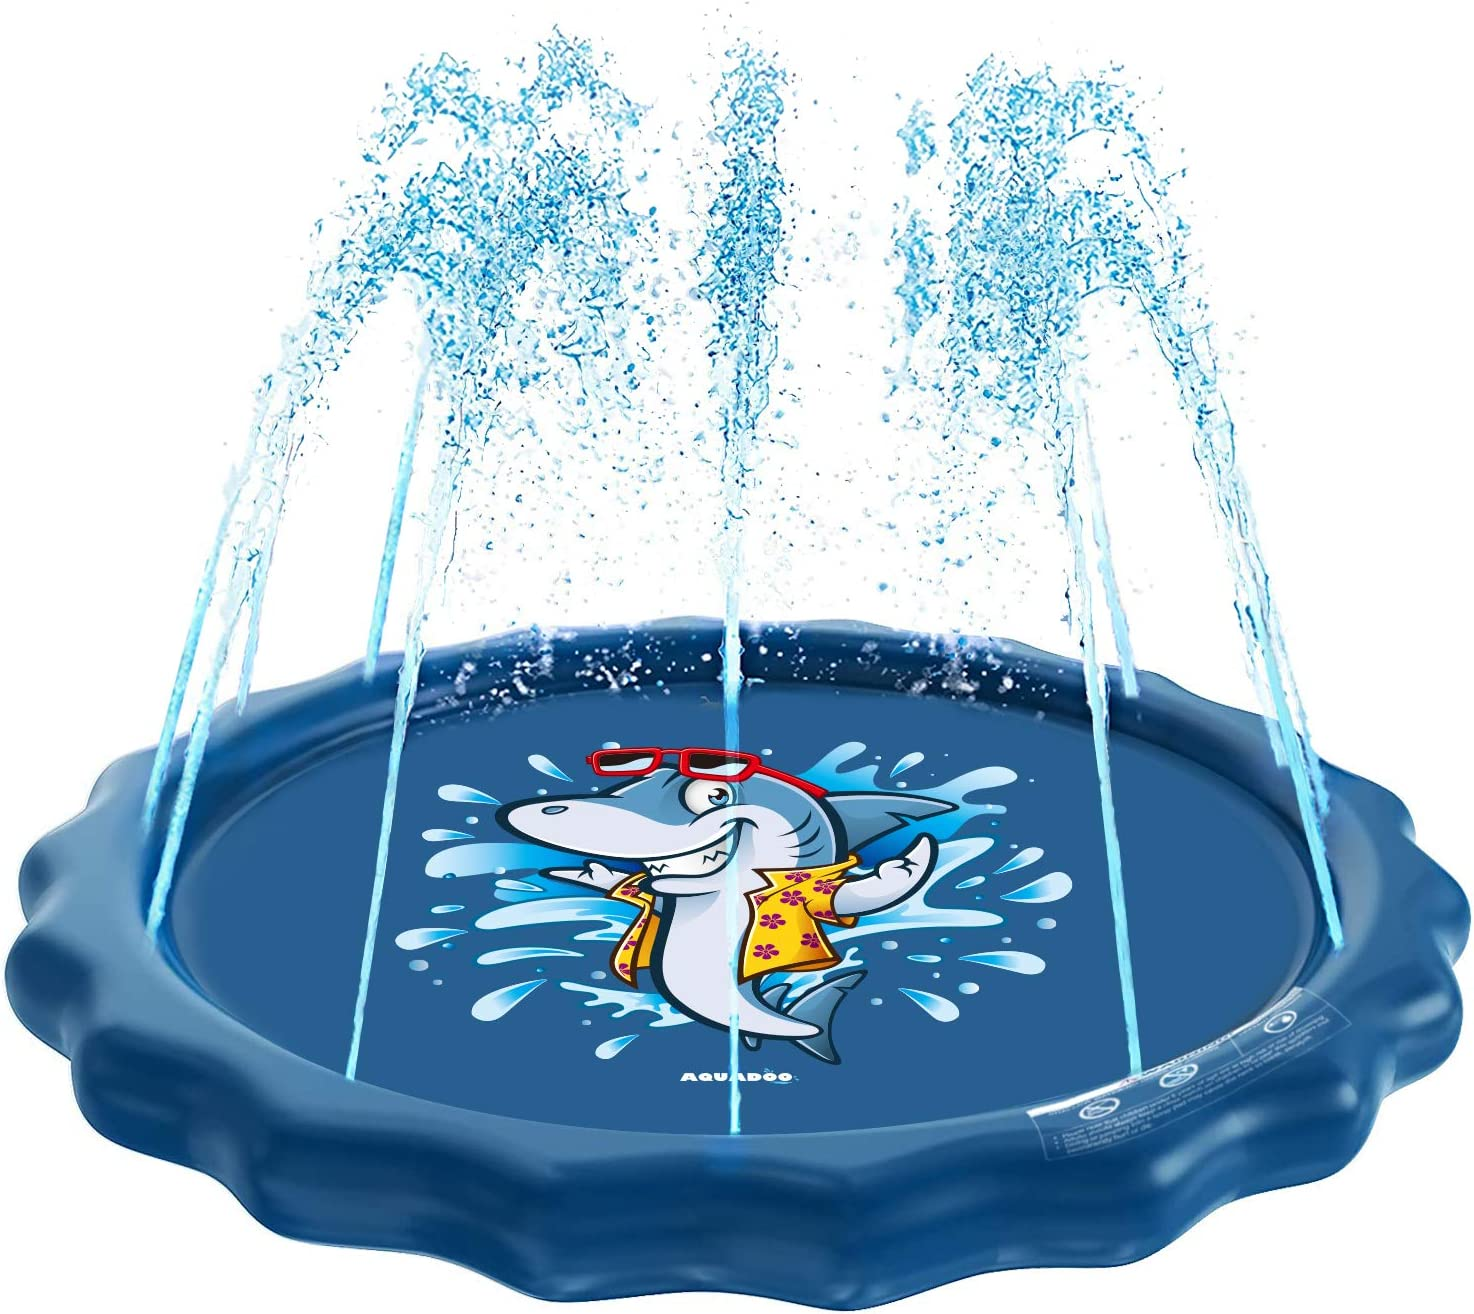 Aquadoo Sprinkler for Kids, Sprinkler Play mat Splash Pad, and Wading Pool – Children's Sprinkler Pool, 68'' Inflatable Water Toys-Cute Shark Outdoor Swimming Pool for Babies and Toddlers